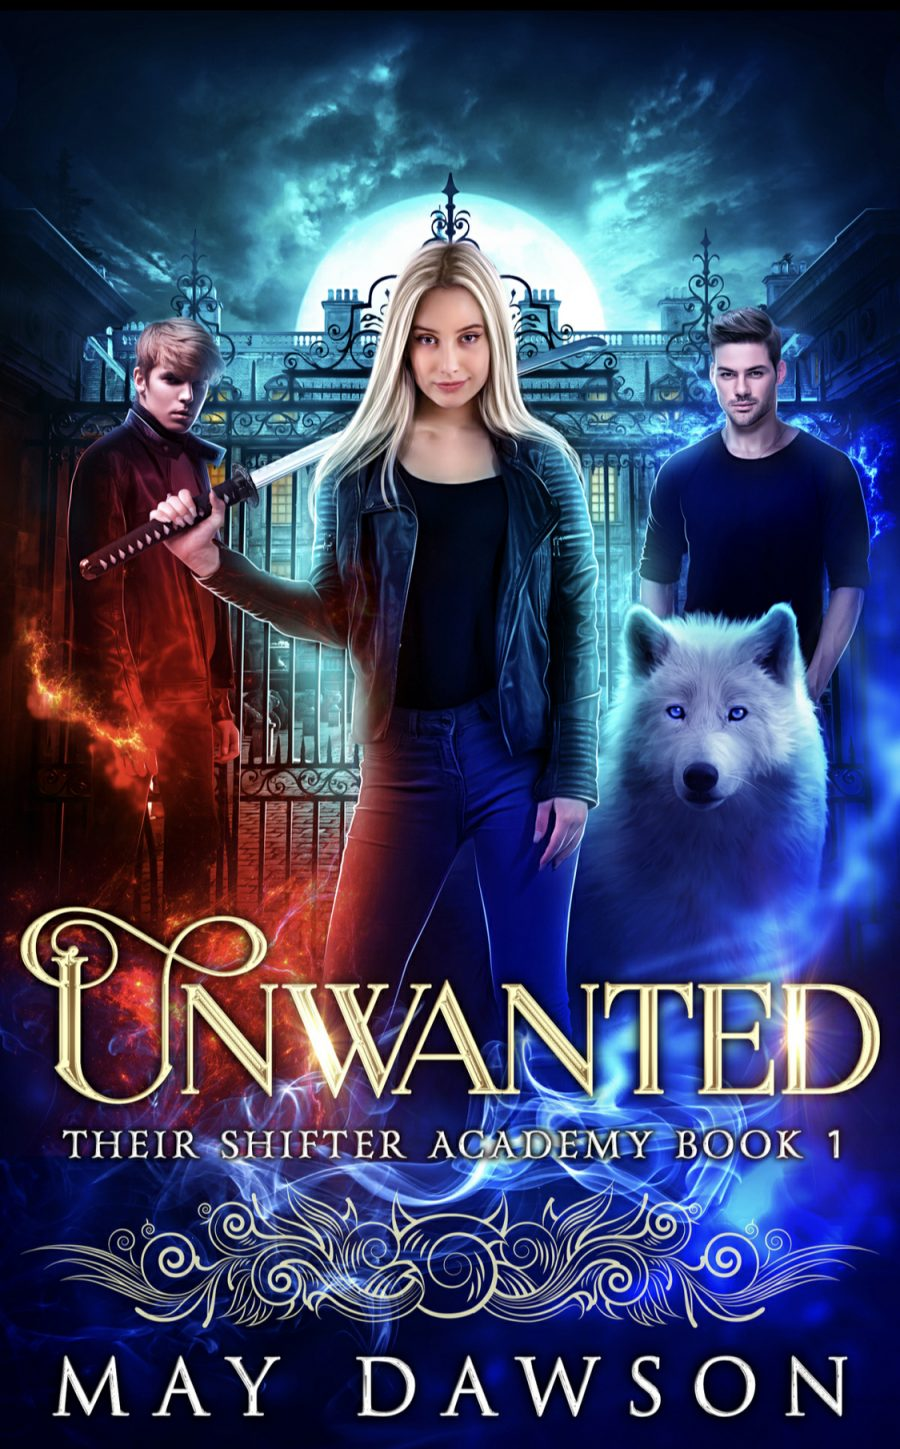 Unwanted (Their Shifter Academy - Book 1) by May Dawson - A Book Review #BookReview #PNR #Academy #SlowBuild #MediumBurn #RH #KindleUnlimited #KU